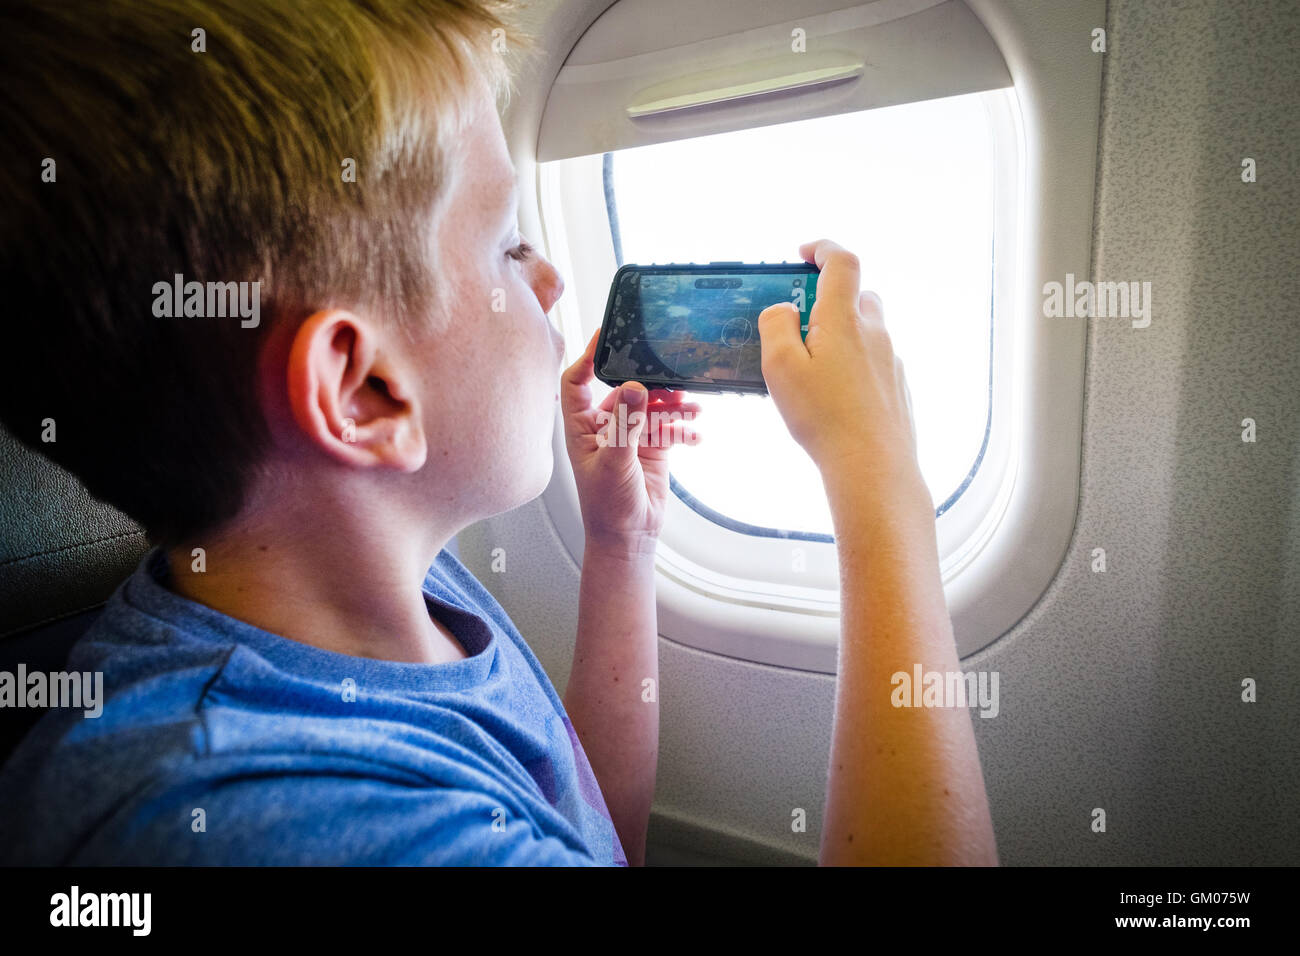 A teenage boy using his mobile phone during the flight on a plane to take a photo out of the window - Stock Image